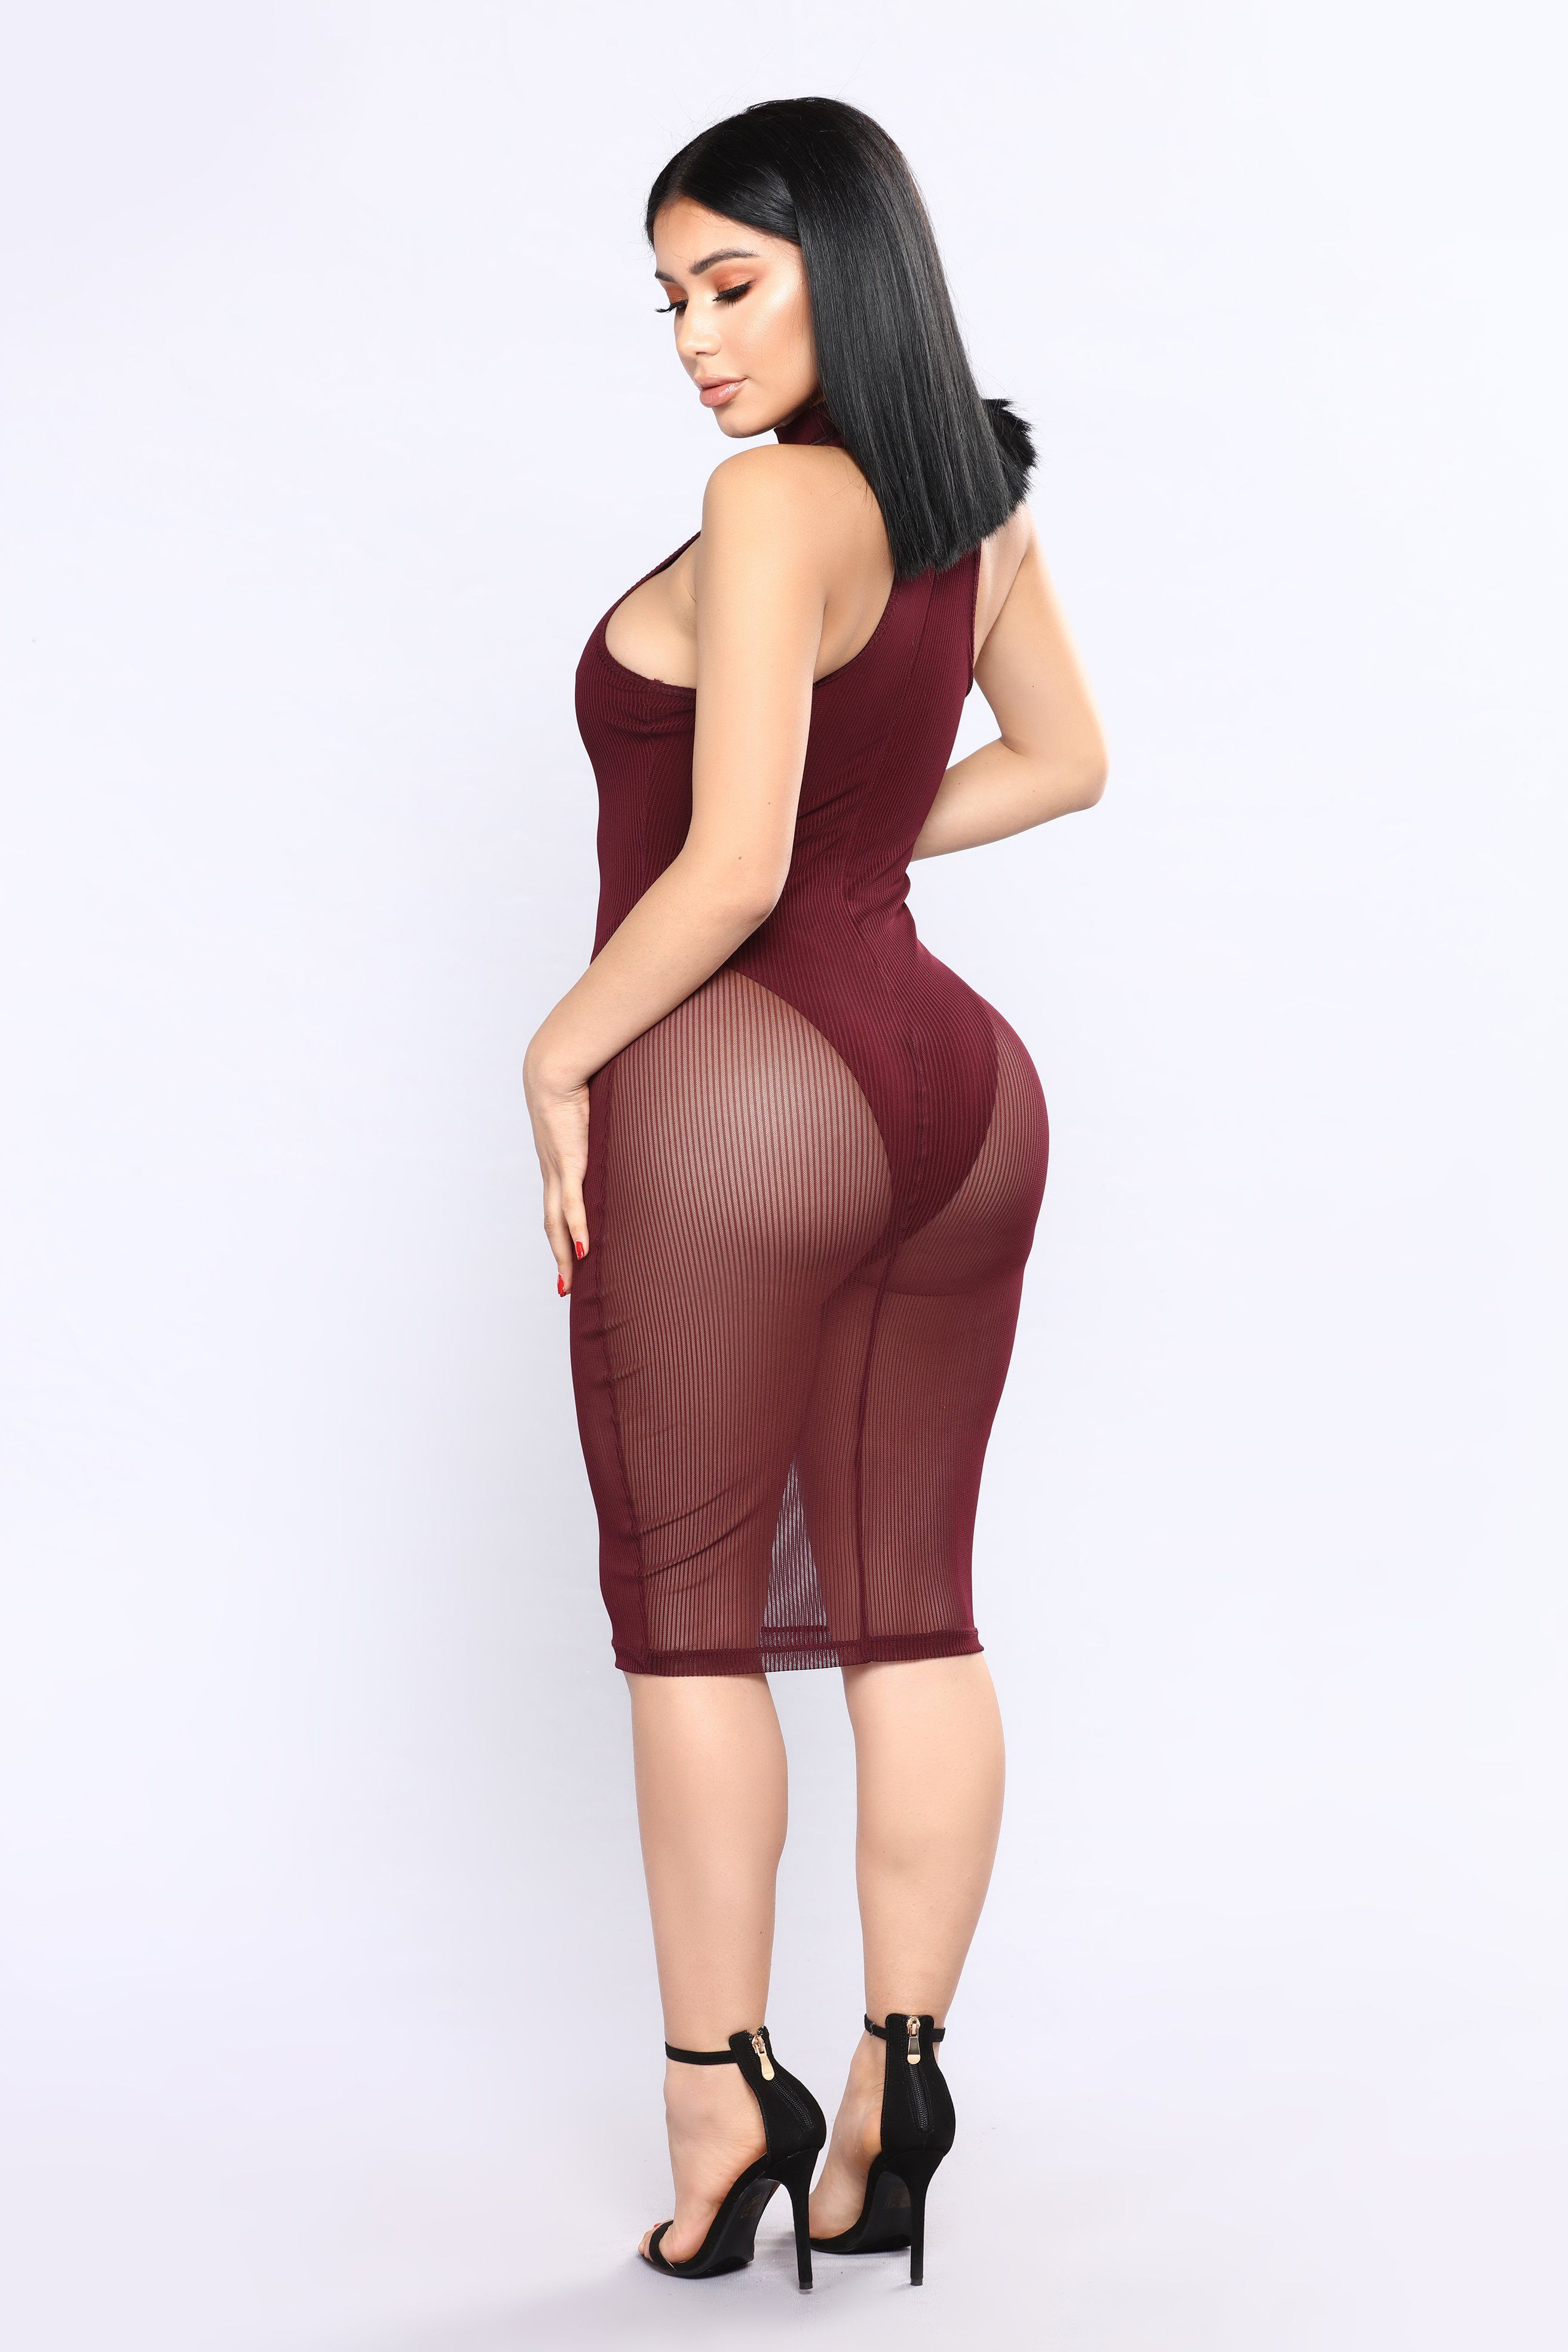 0e2f2143352 Available In Red/Brown Sheer Dress Body Suit Lining Mock Neck Snap Closure  95% Polyester 5% Spandex